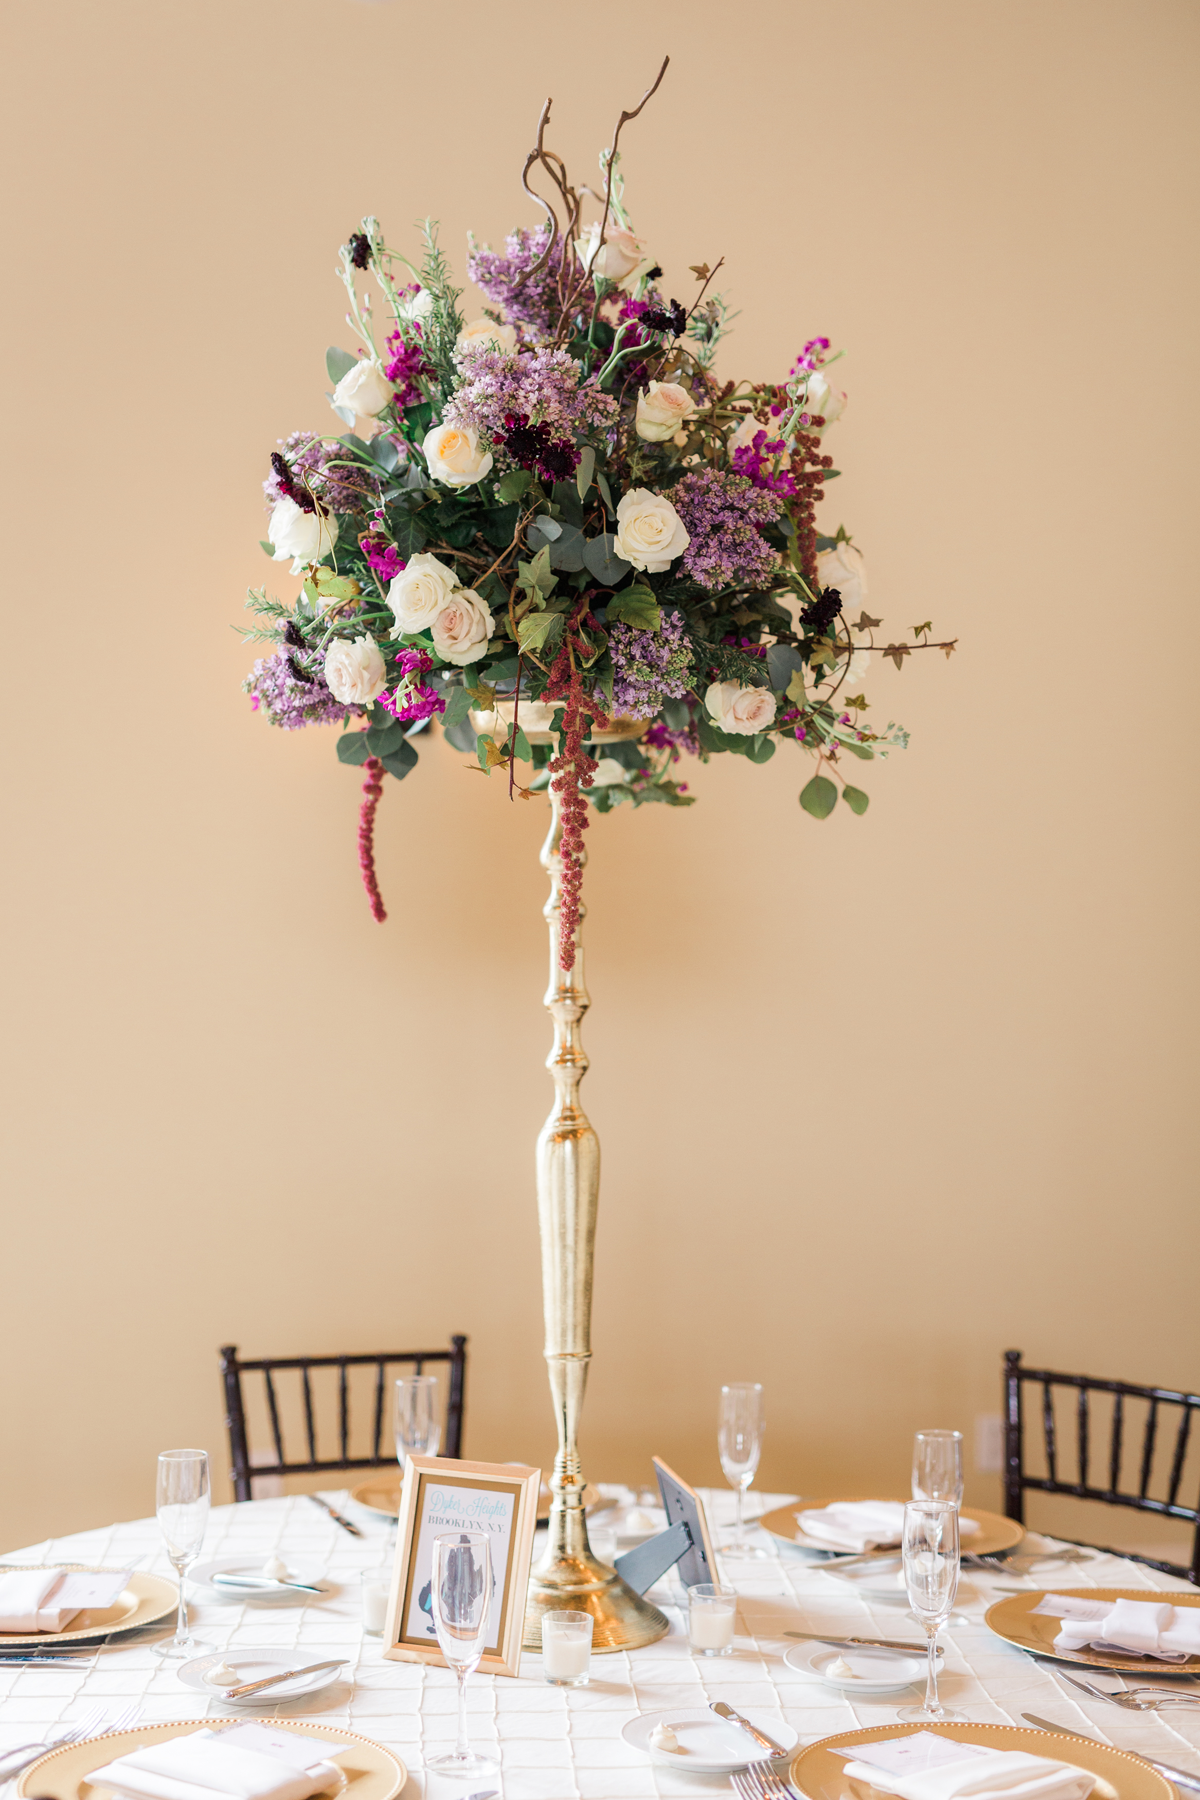 i-charlottesville-wedding-decor